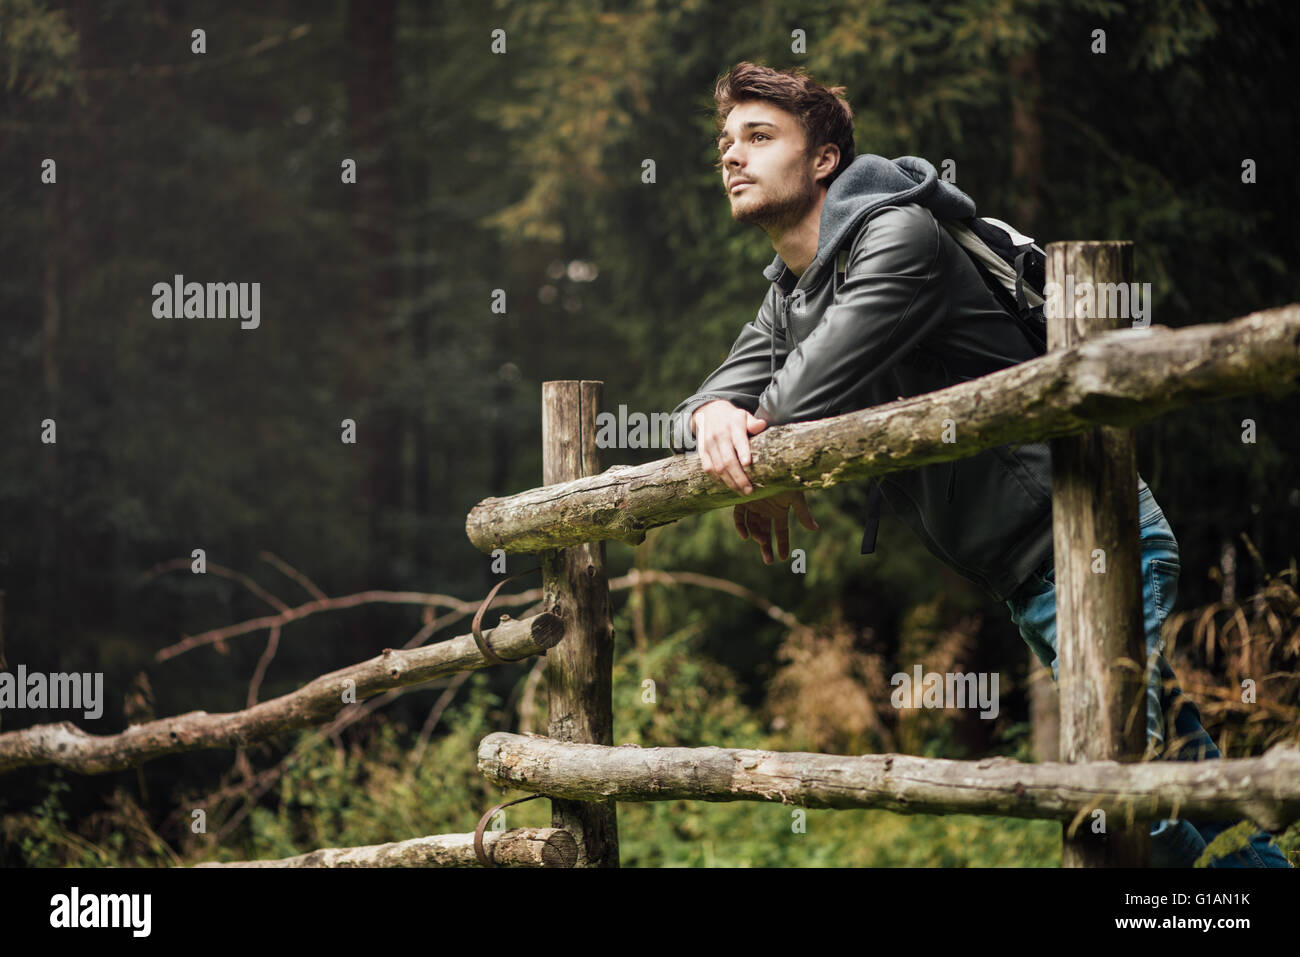 Young man with backpack hiking in the forest and leaning on a wooden fence, nature and physical exercise concept - Stock Image